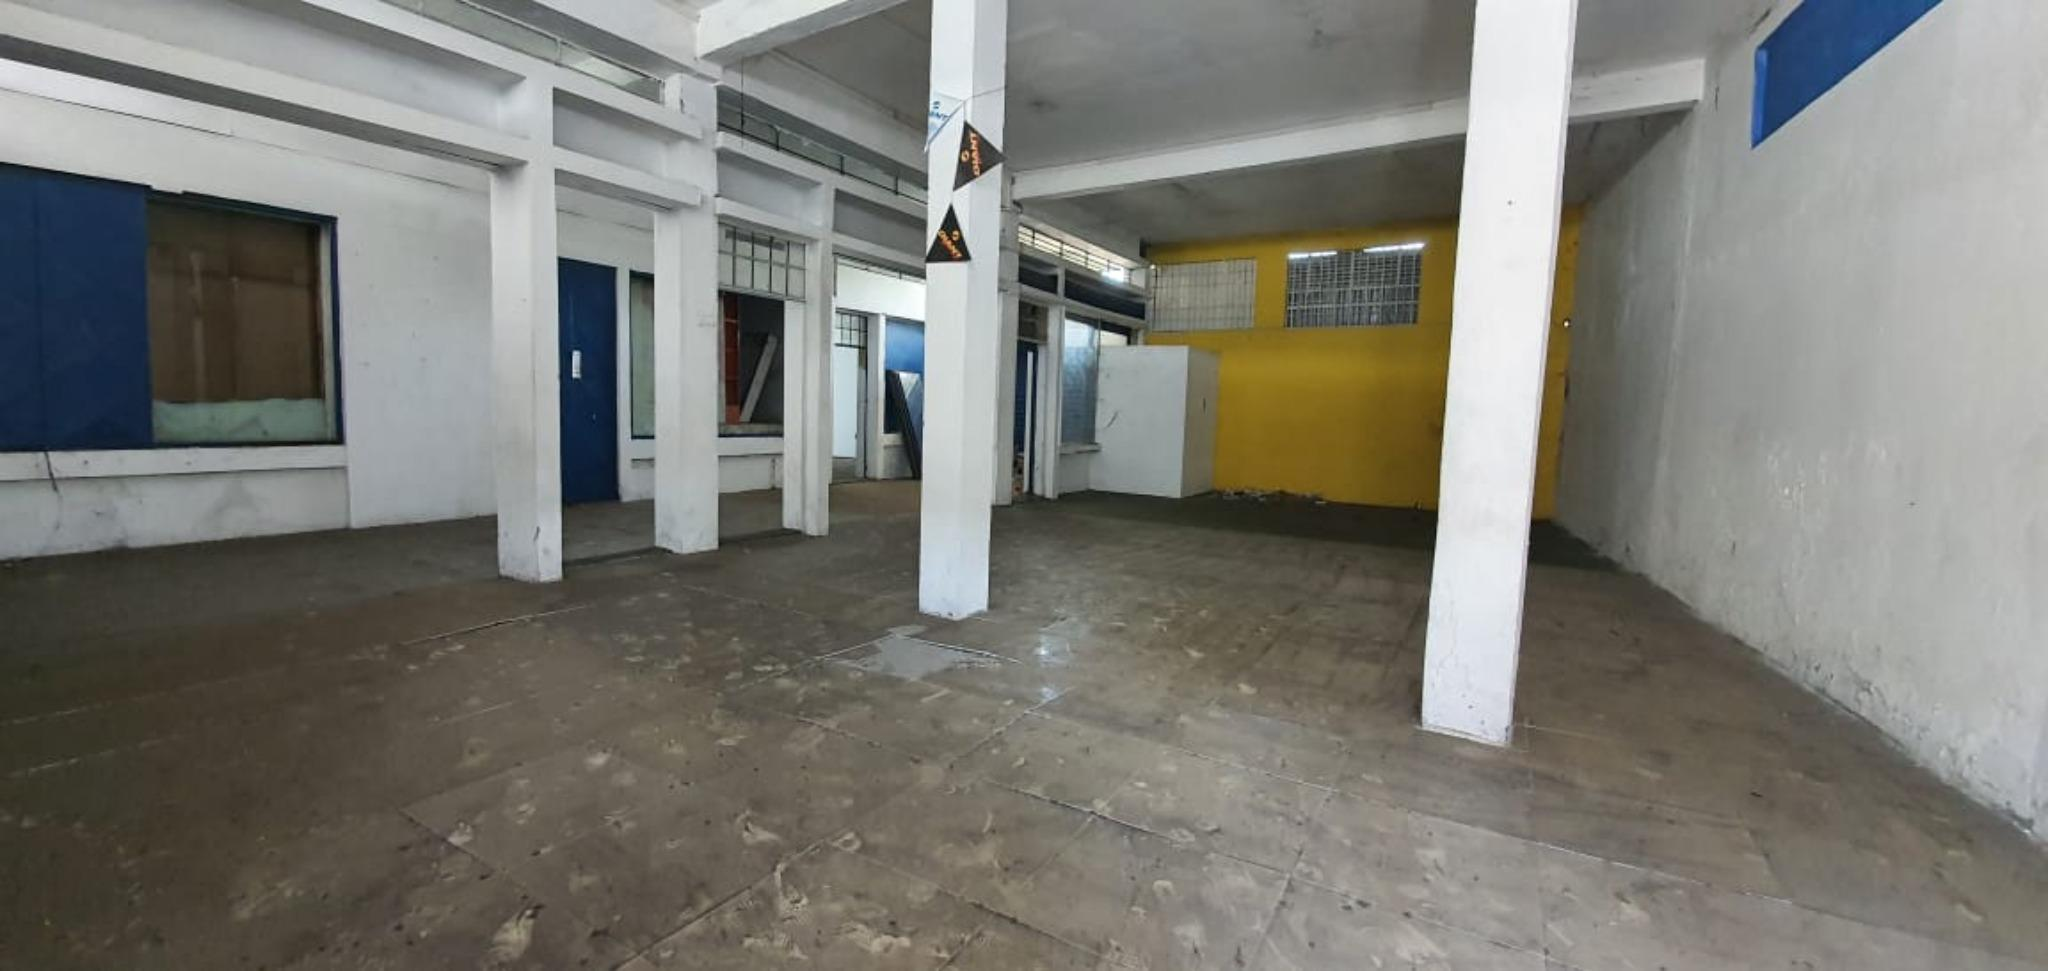 FOR SALE – Commercial building to renovate of 743 m2 on the main road in Port-Louis.